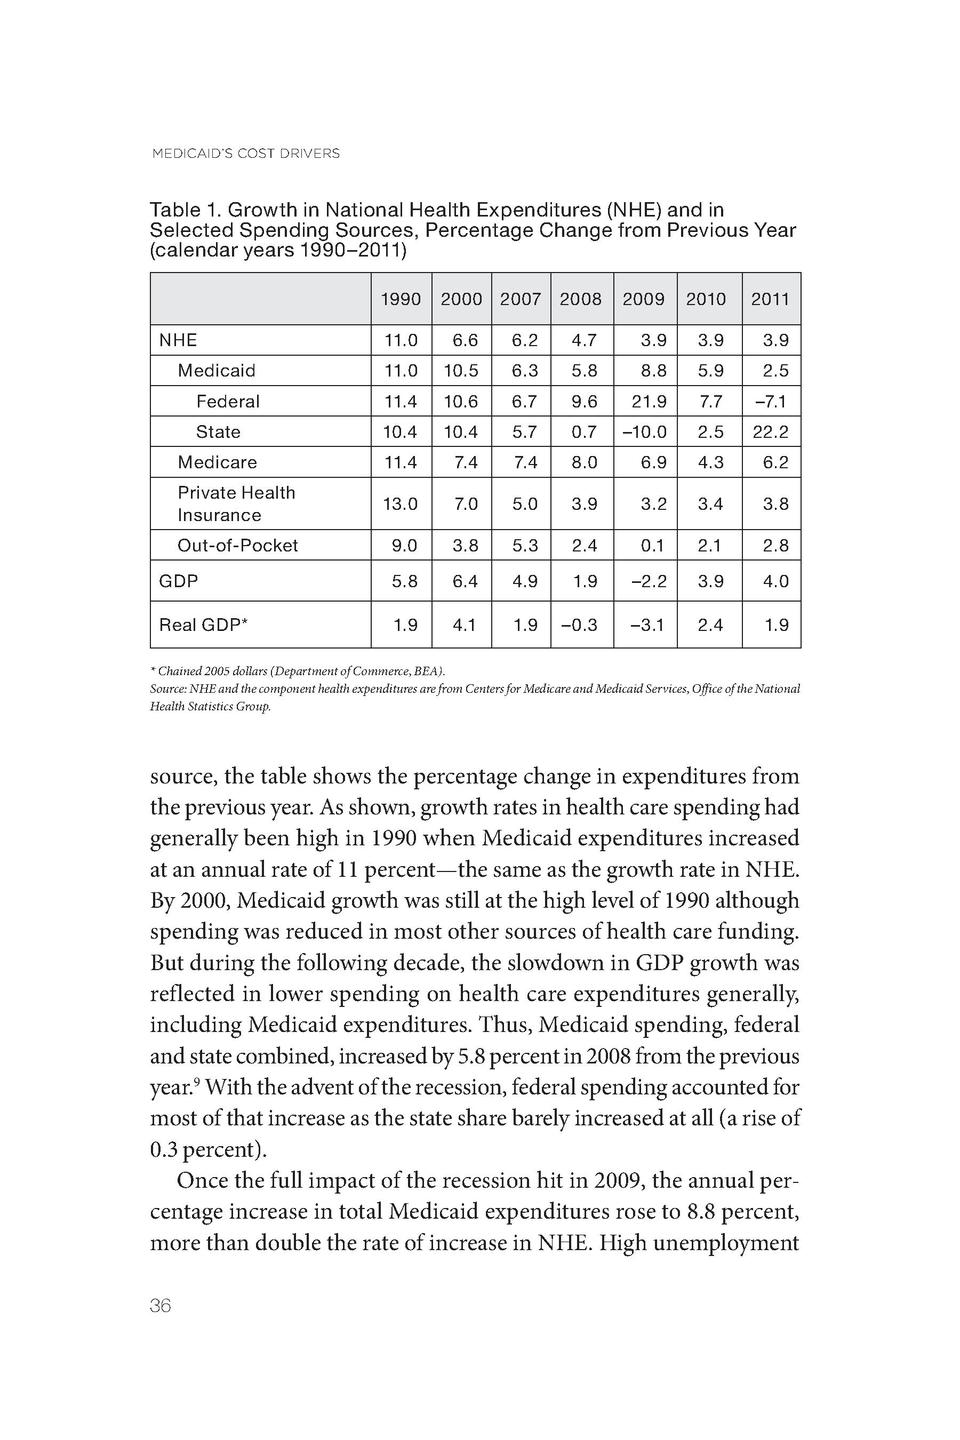 MEDICAID   S COST DRIVERS  Table 1. Growth in National Health Expenditures  NHE  and in Selected Spending Sources, Percent...